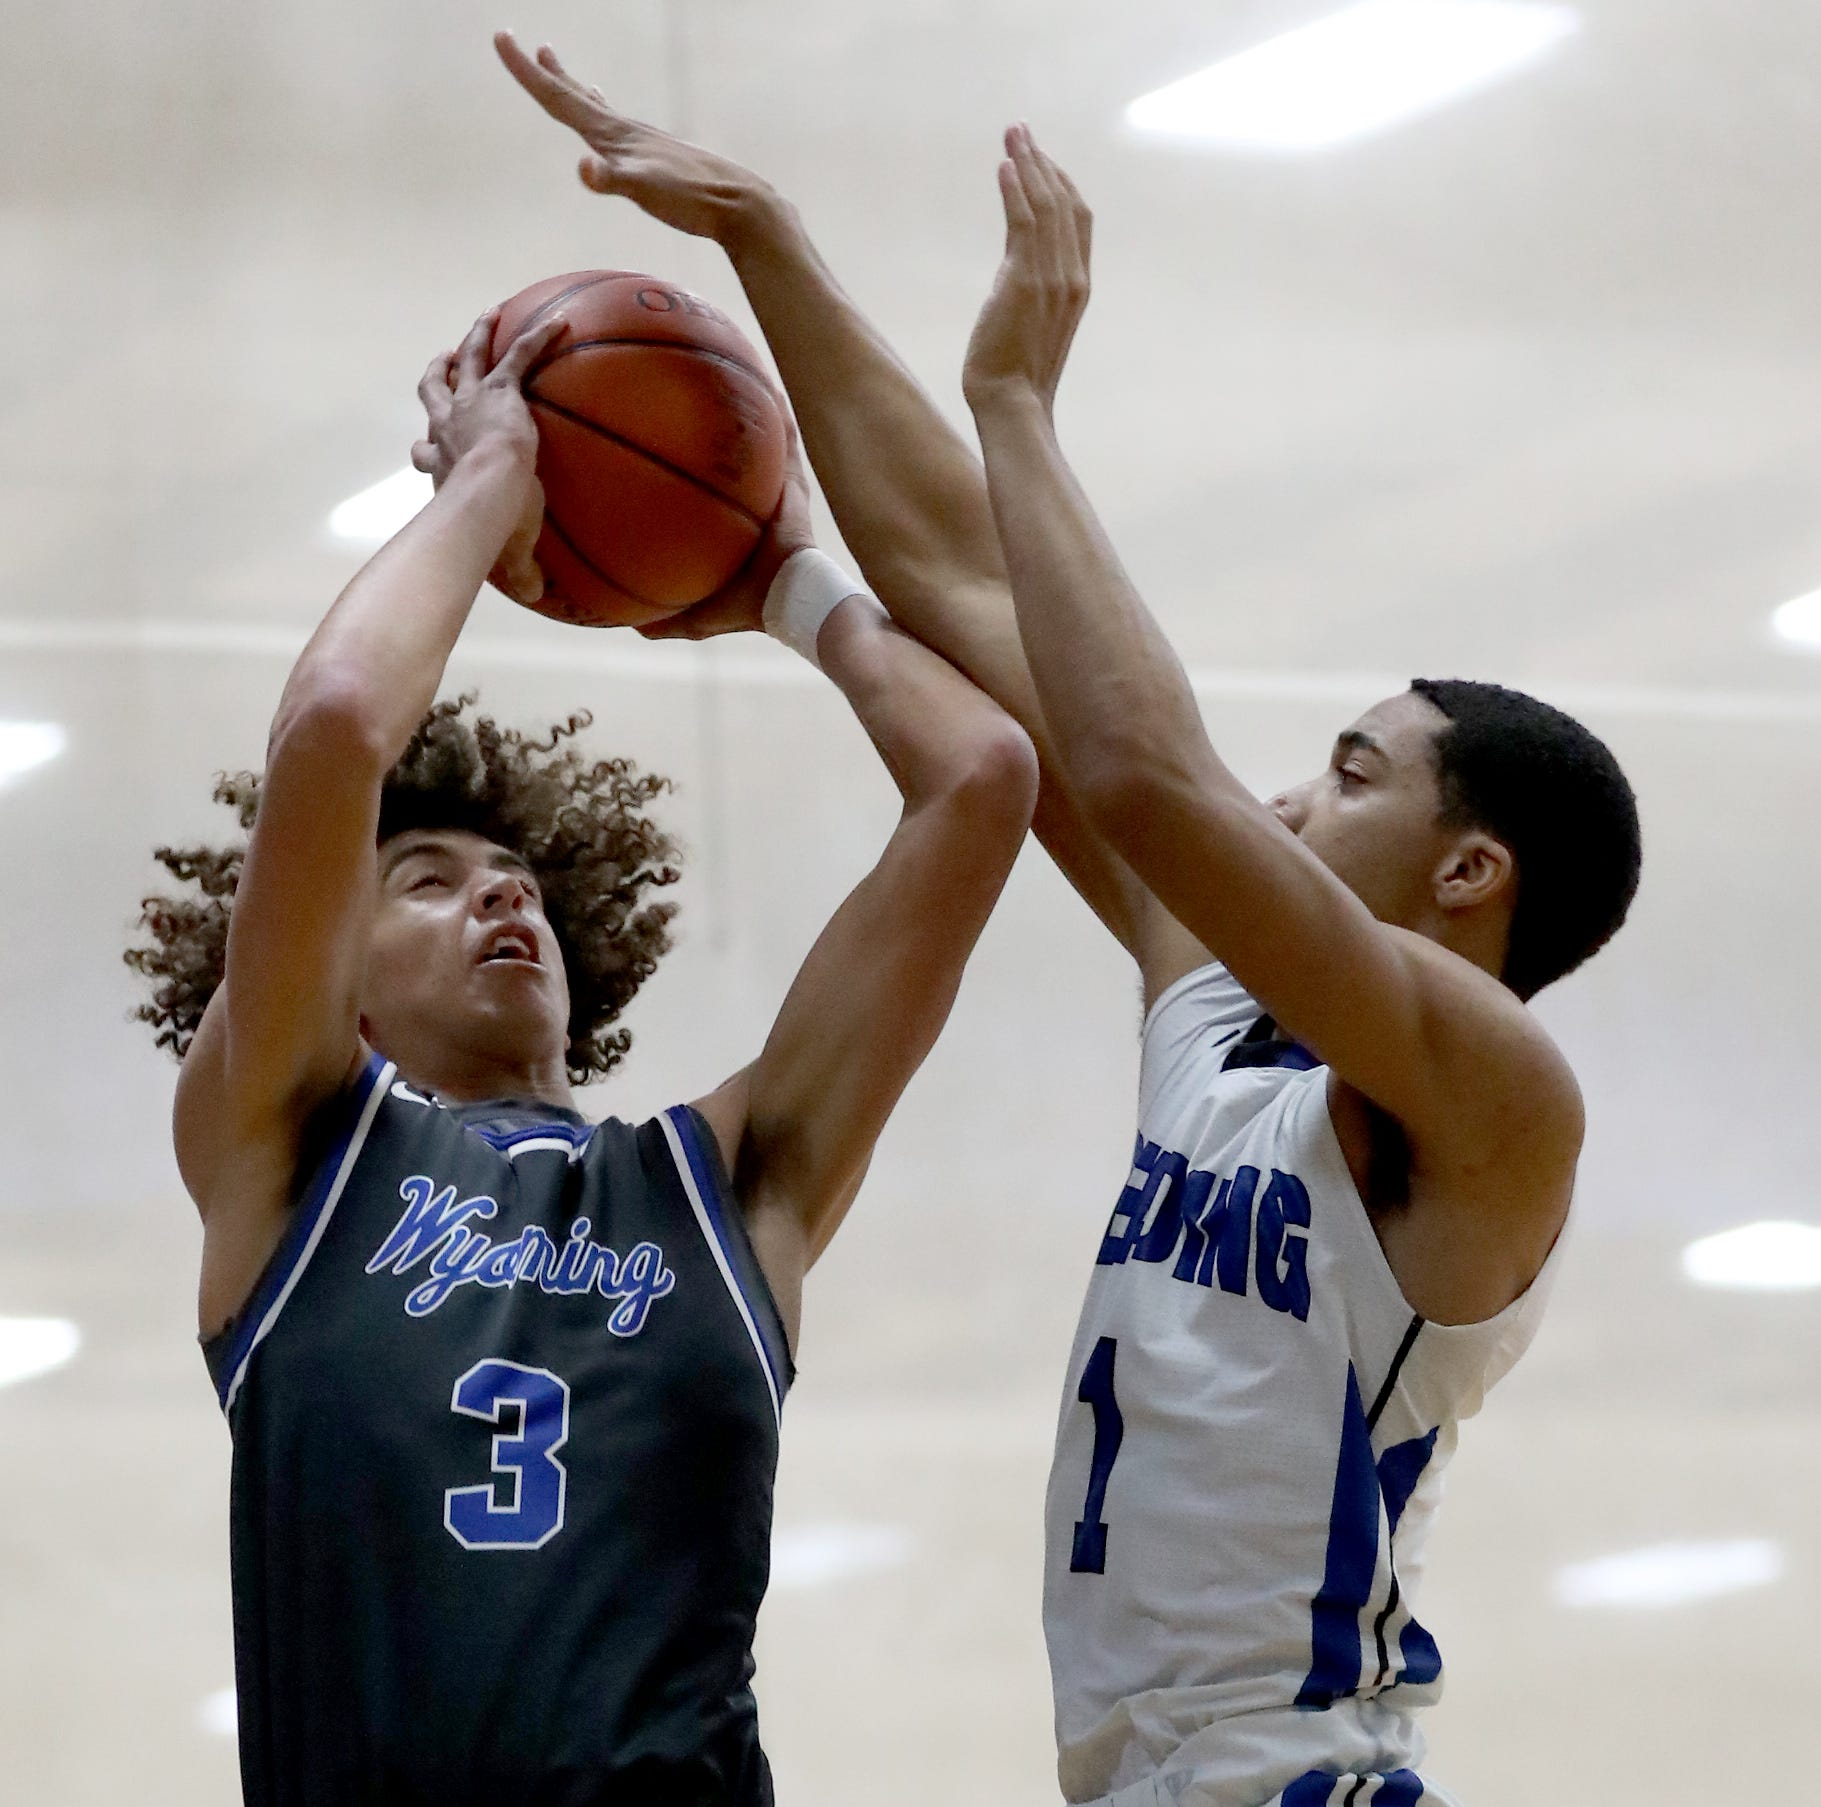 Wyoming guard Evan Prater (3) shoots the ball over Reading guard A.J. Brown  during their basketball game , Friday, Jan.4, 2019.